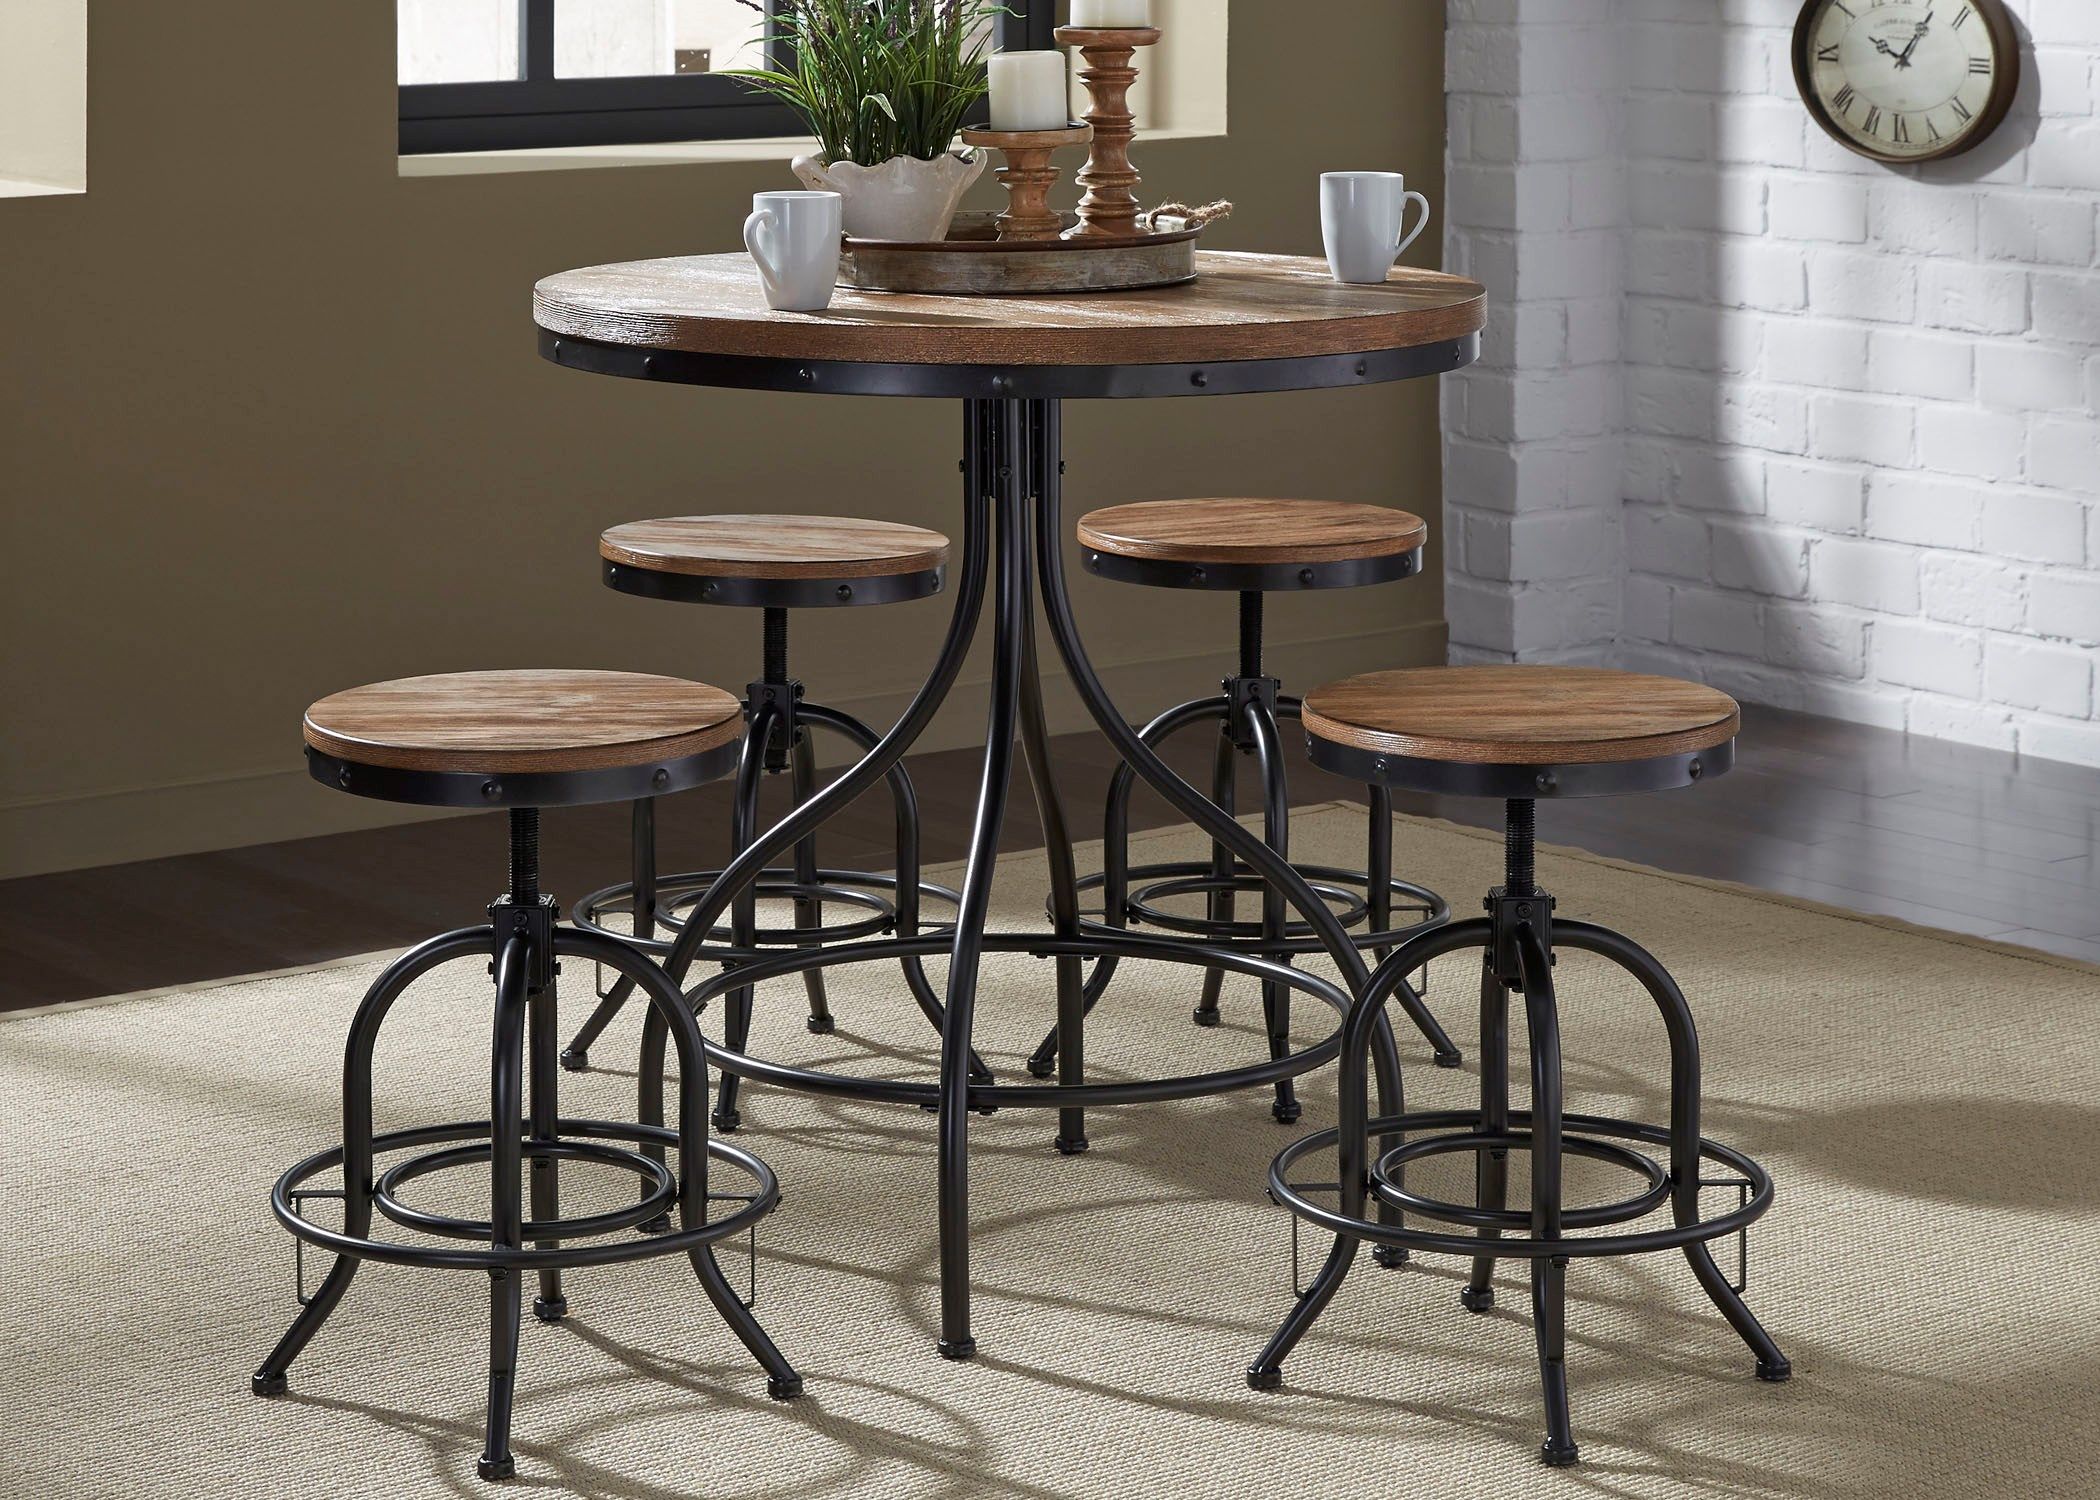 Liberty Furniture Vintage Dining Series 5 Piece Pub Table And Bar Stool Set